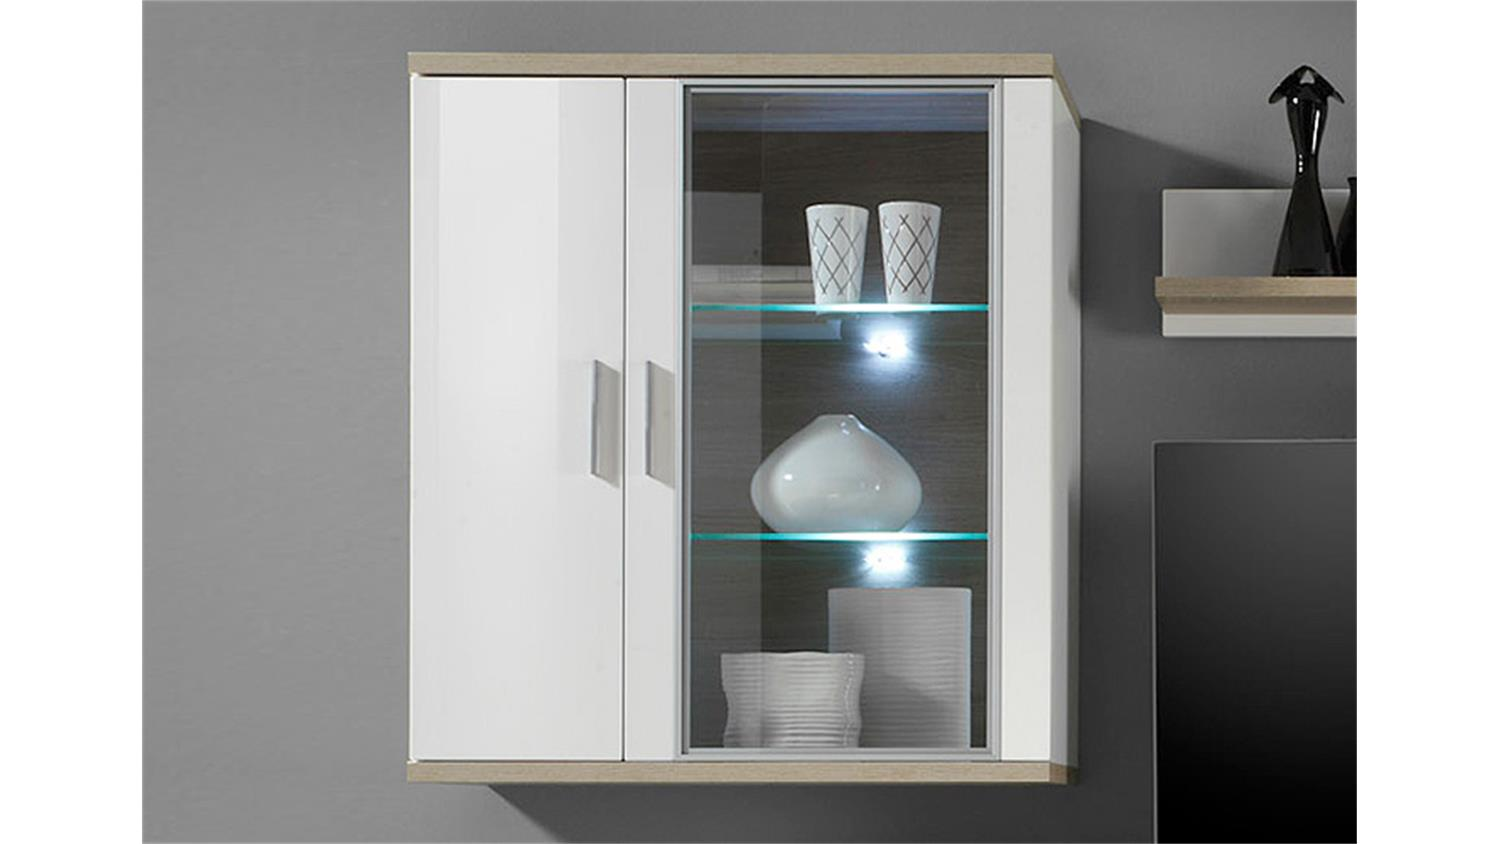 h ngevitrine arena wei hochglanz eiche s gerau inkl led. Black Bedroom Furniture Sets. Home Design Ideas